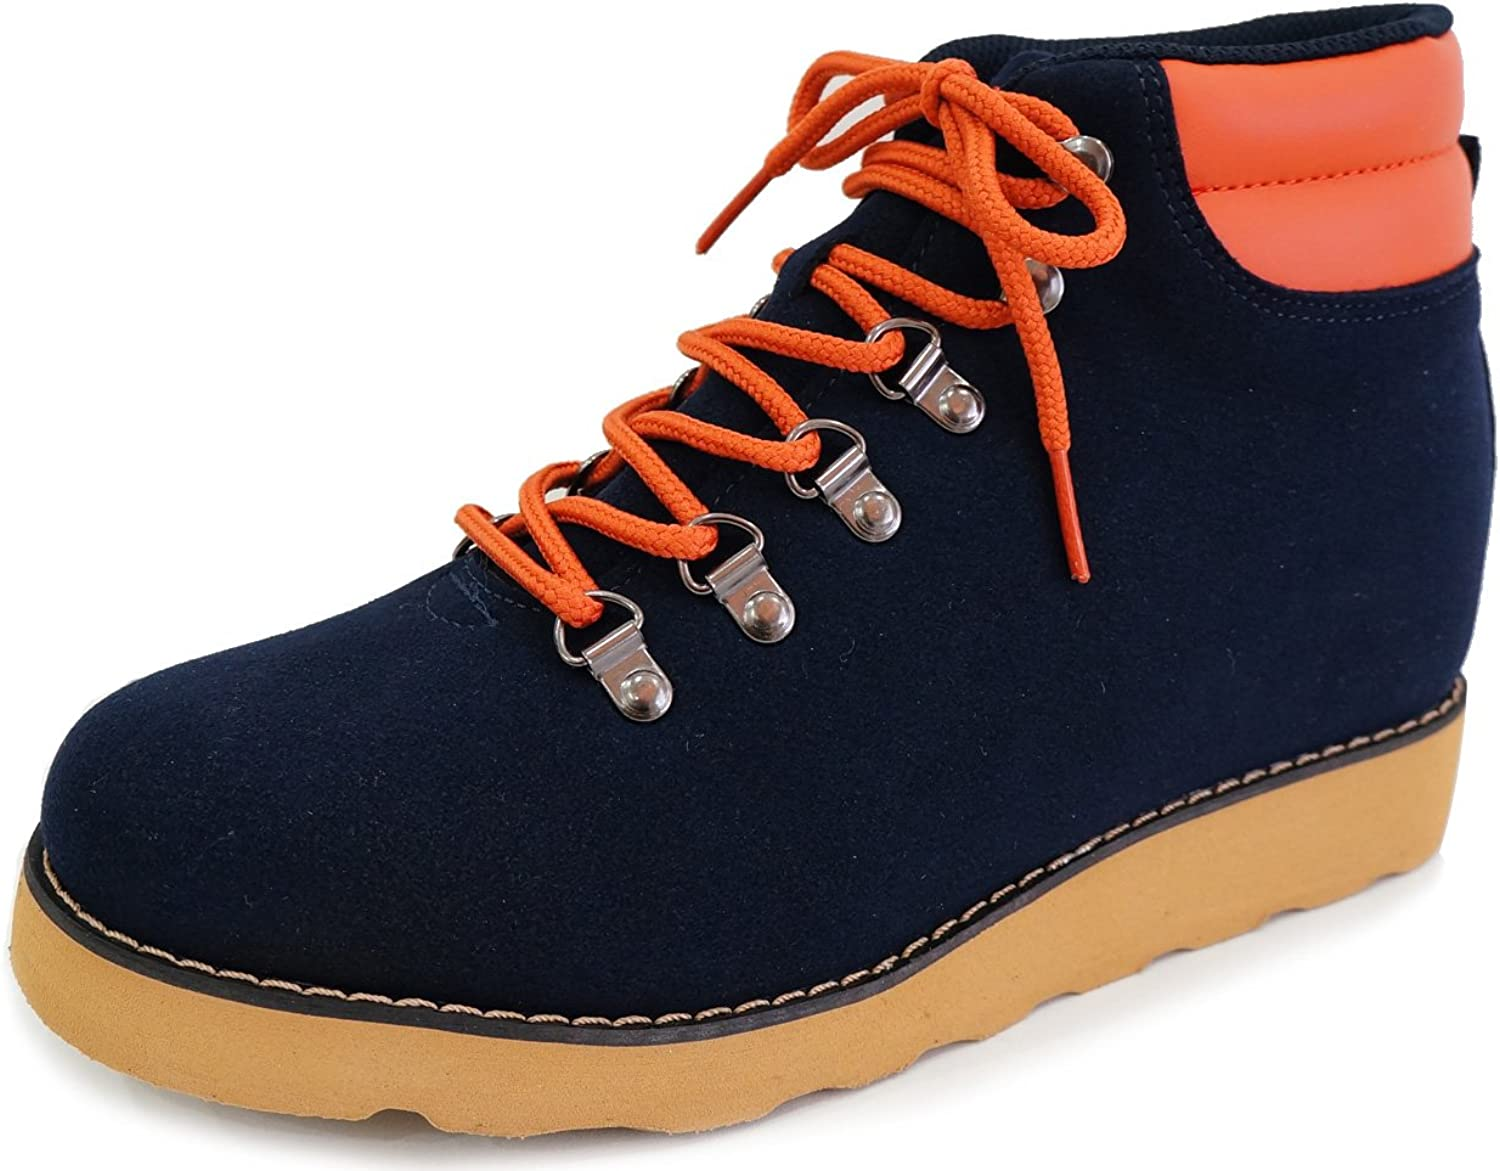 MNX15 Men's Elevator shoes Height Increase 3.9  GIO Navy